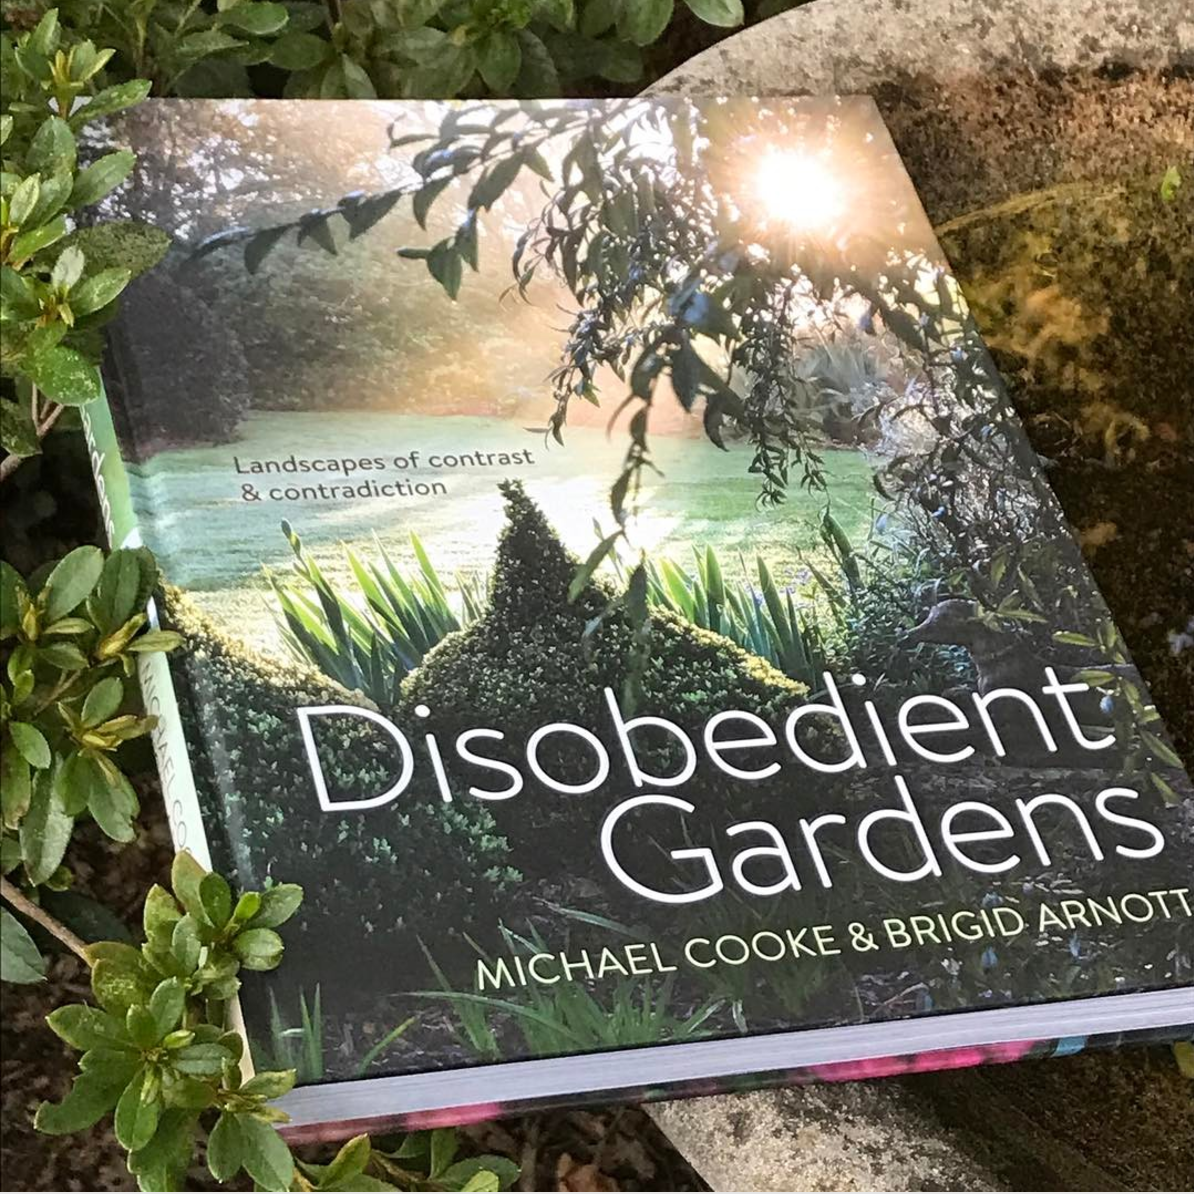 Disobedient Gardens. Image from @thebookshopbowra on Instagram